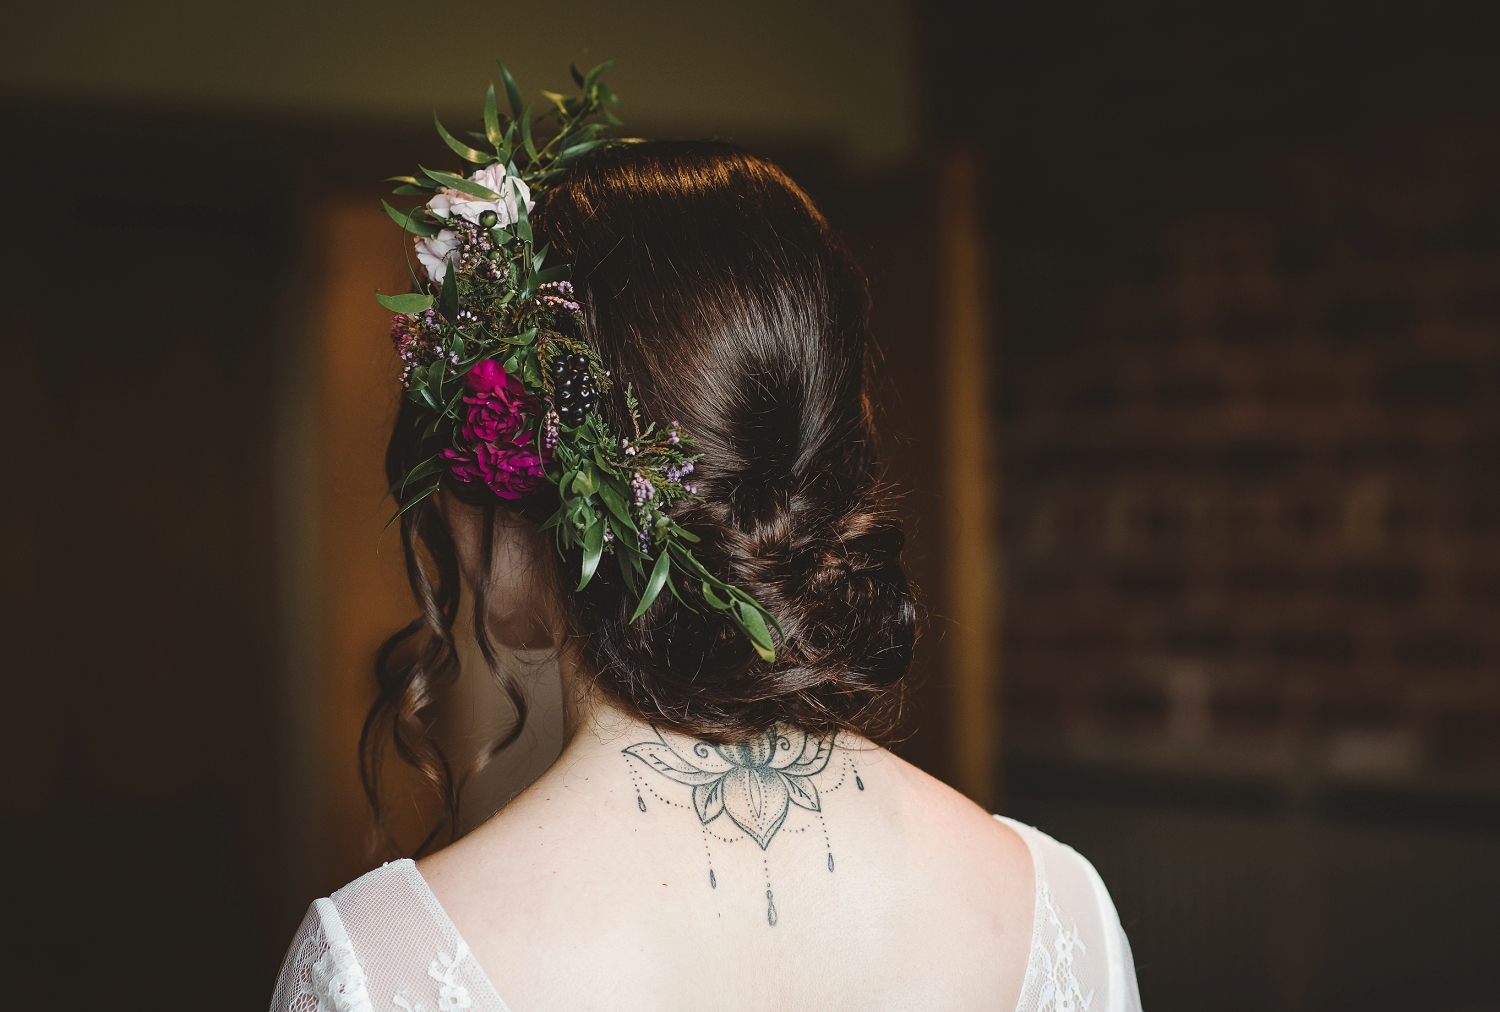 Curradine_bridal_Sept_17_amytiphoto_0037.jpg